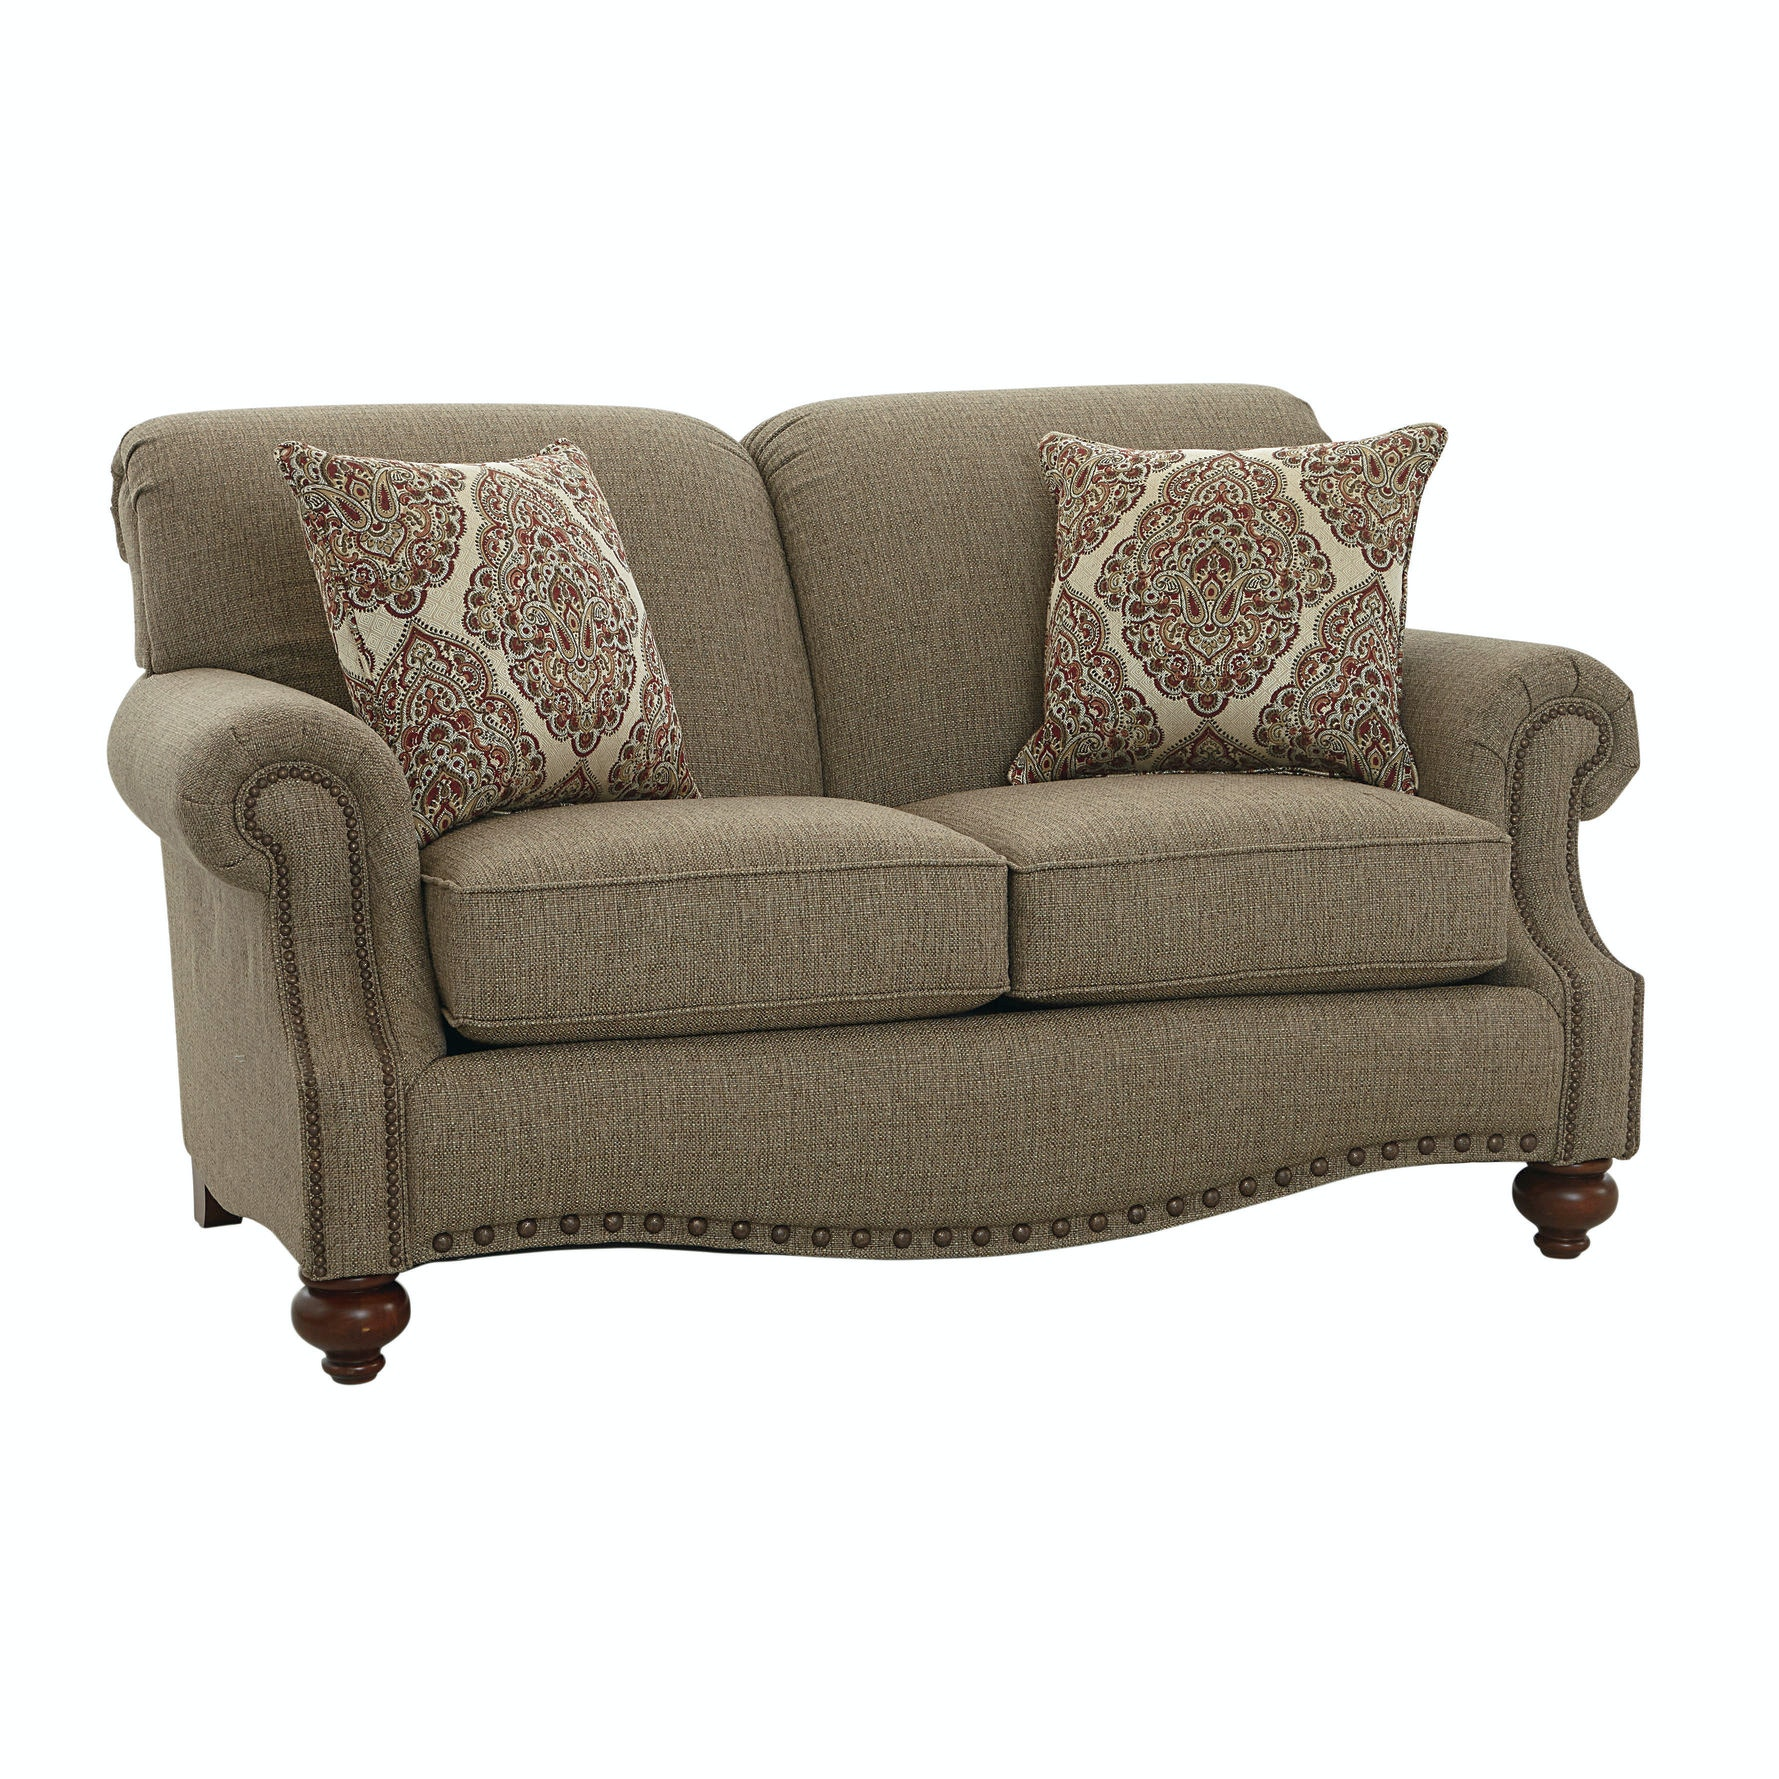 742649. Loveseat With Pillows